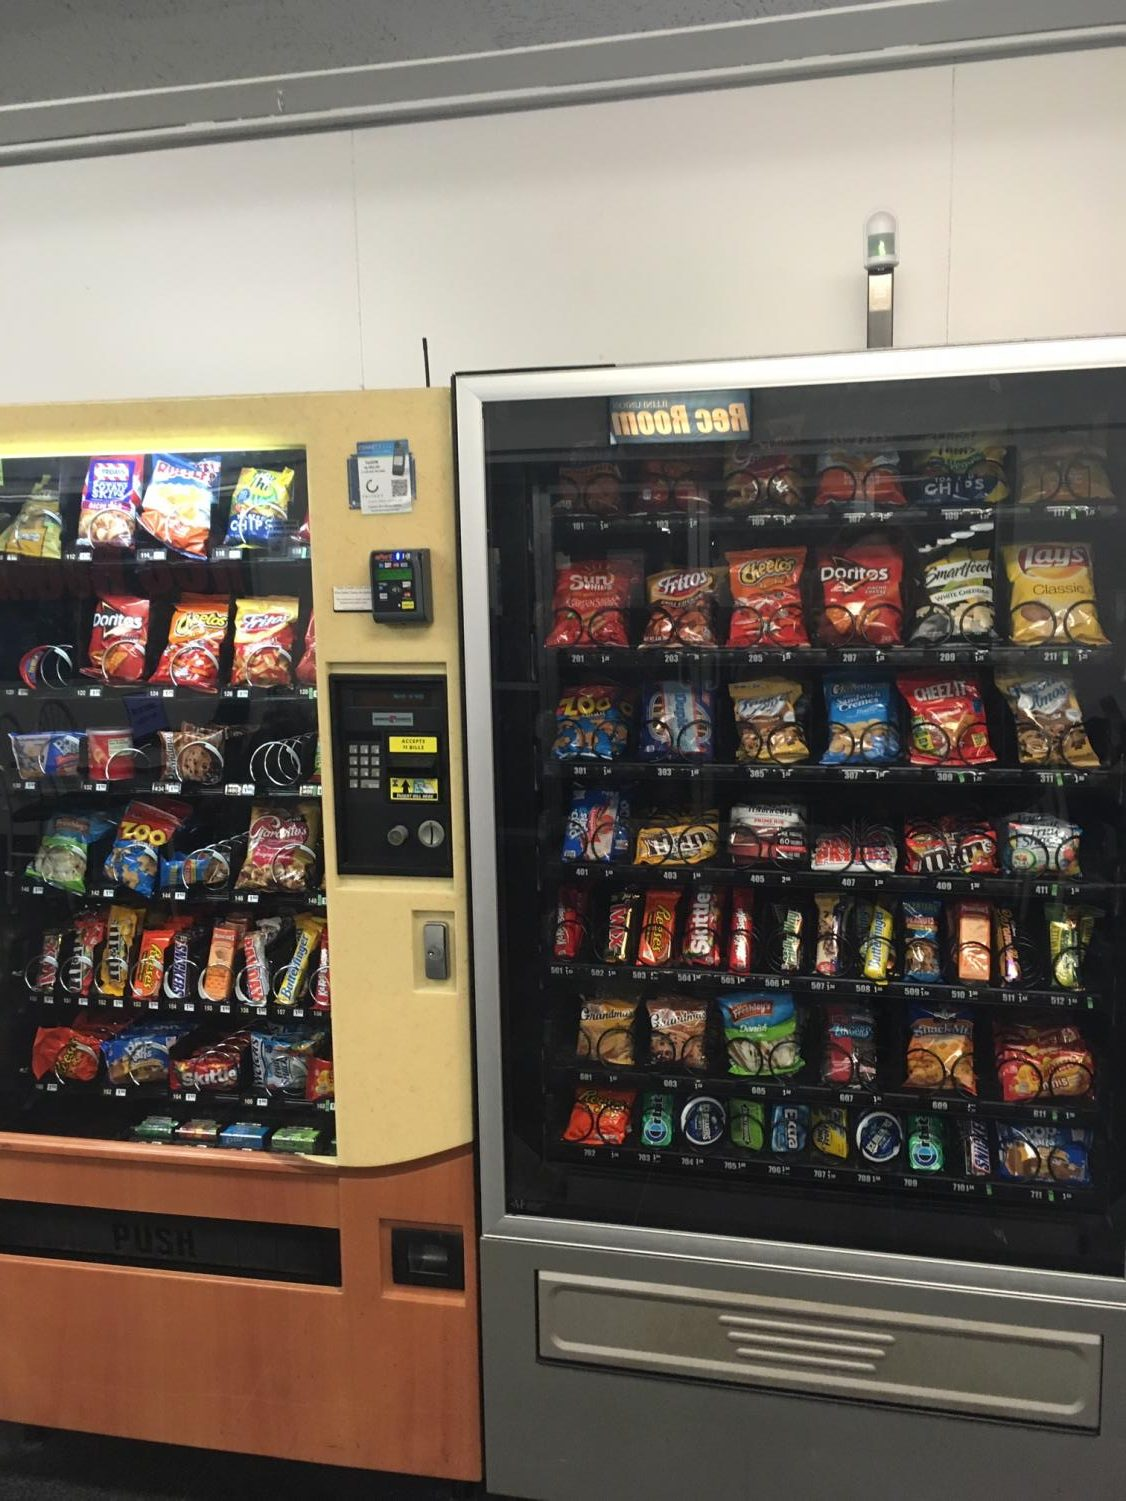 Vending machines stocked with energy drinks, sugary sodas and convenient snacks at the Illini Union. While students are busy with finals, it is important to maintain healthy habits, including a nutritious diet and exercise.